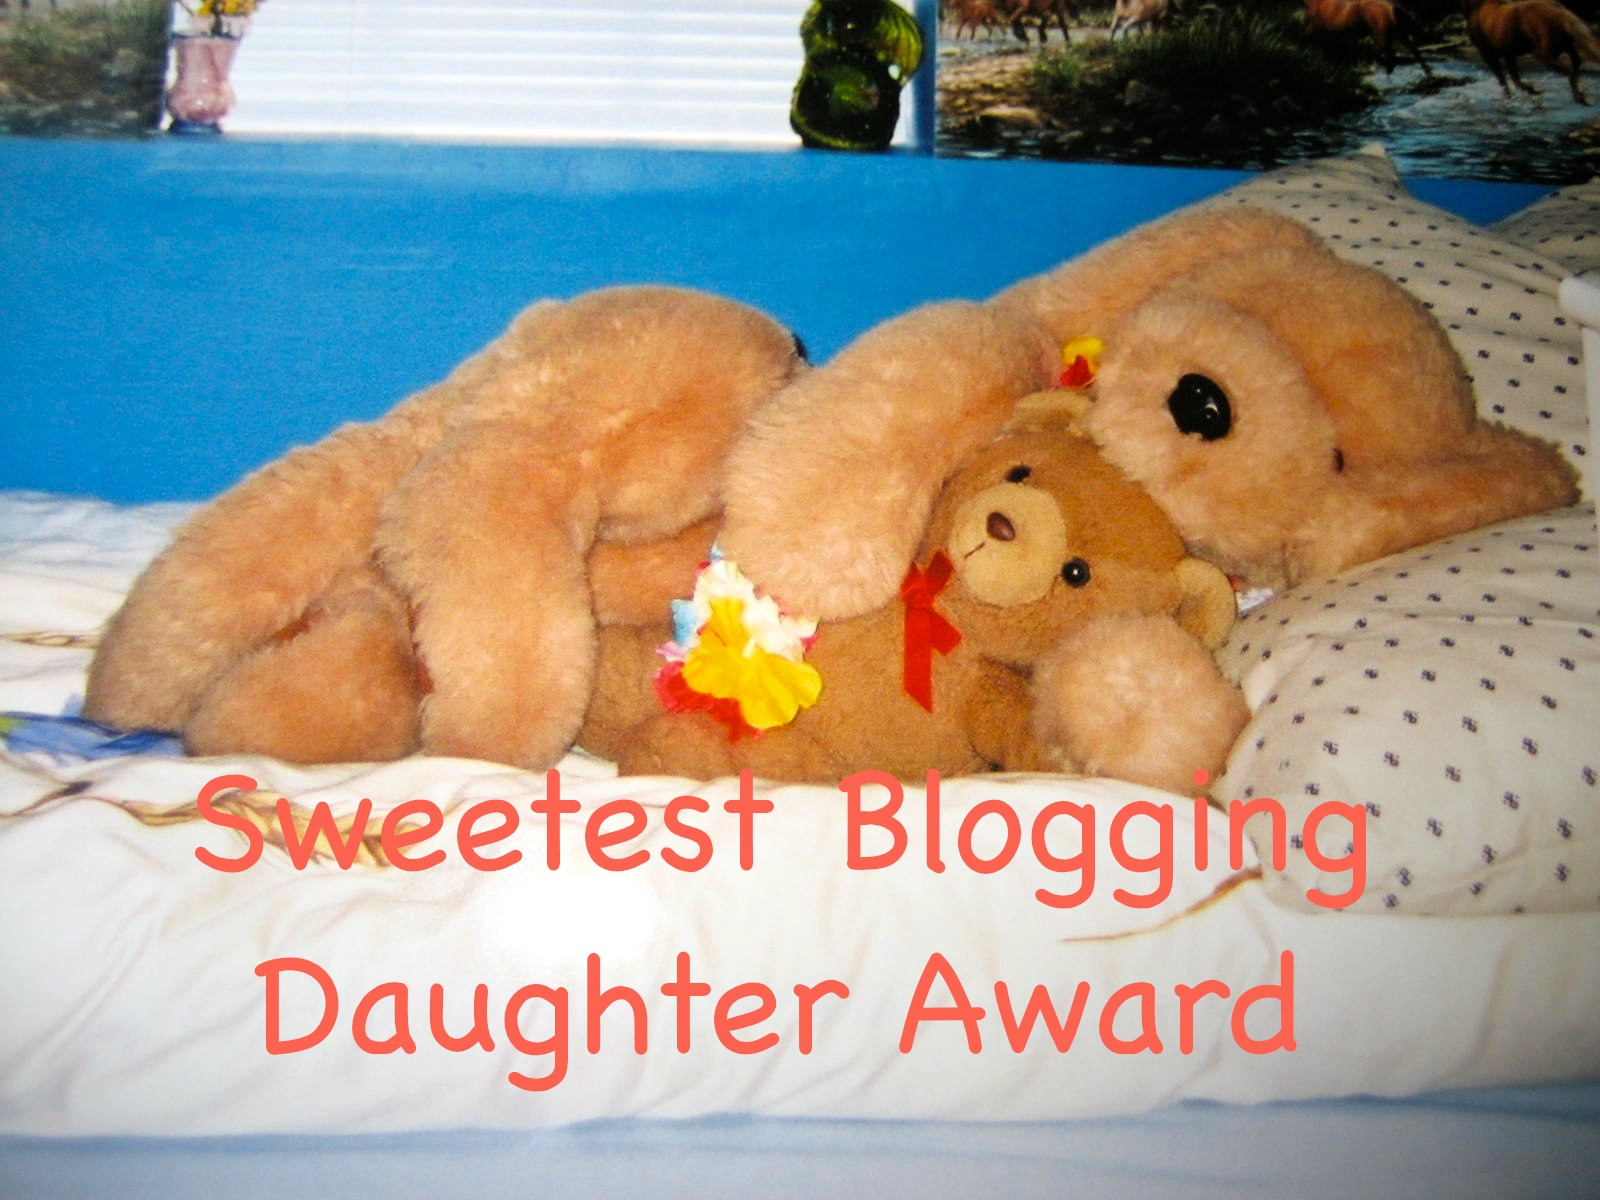 http://1.bp.blogspot.com/-gcCULsiogk0/Taa2-Rf5HiI/AAAAAAAAAUY/WF_UN47I87c/s1600/Sweetest+Blogging+Daughter+Award.jpg